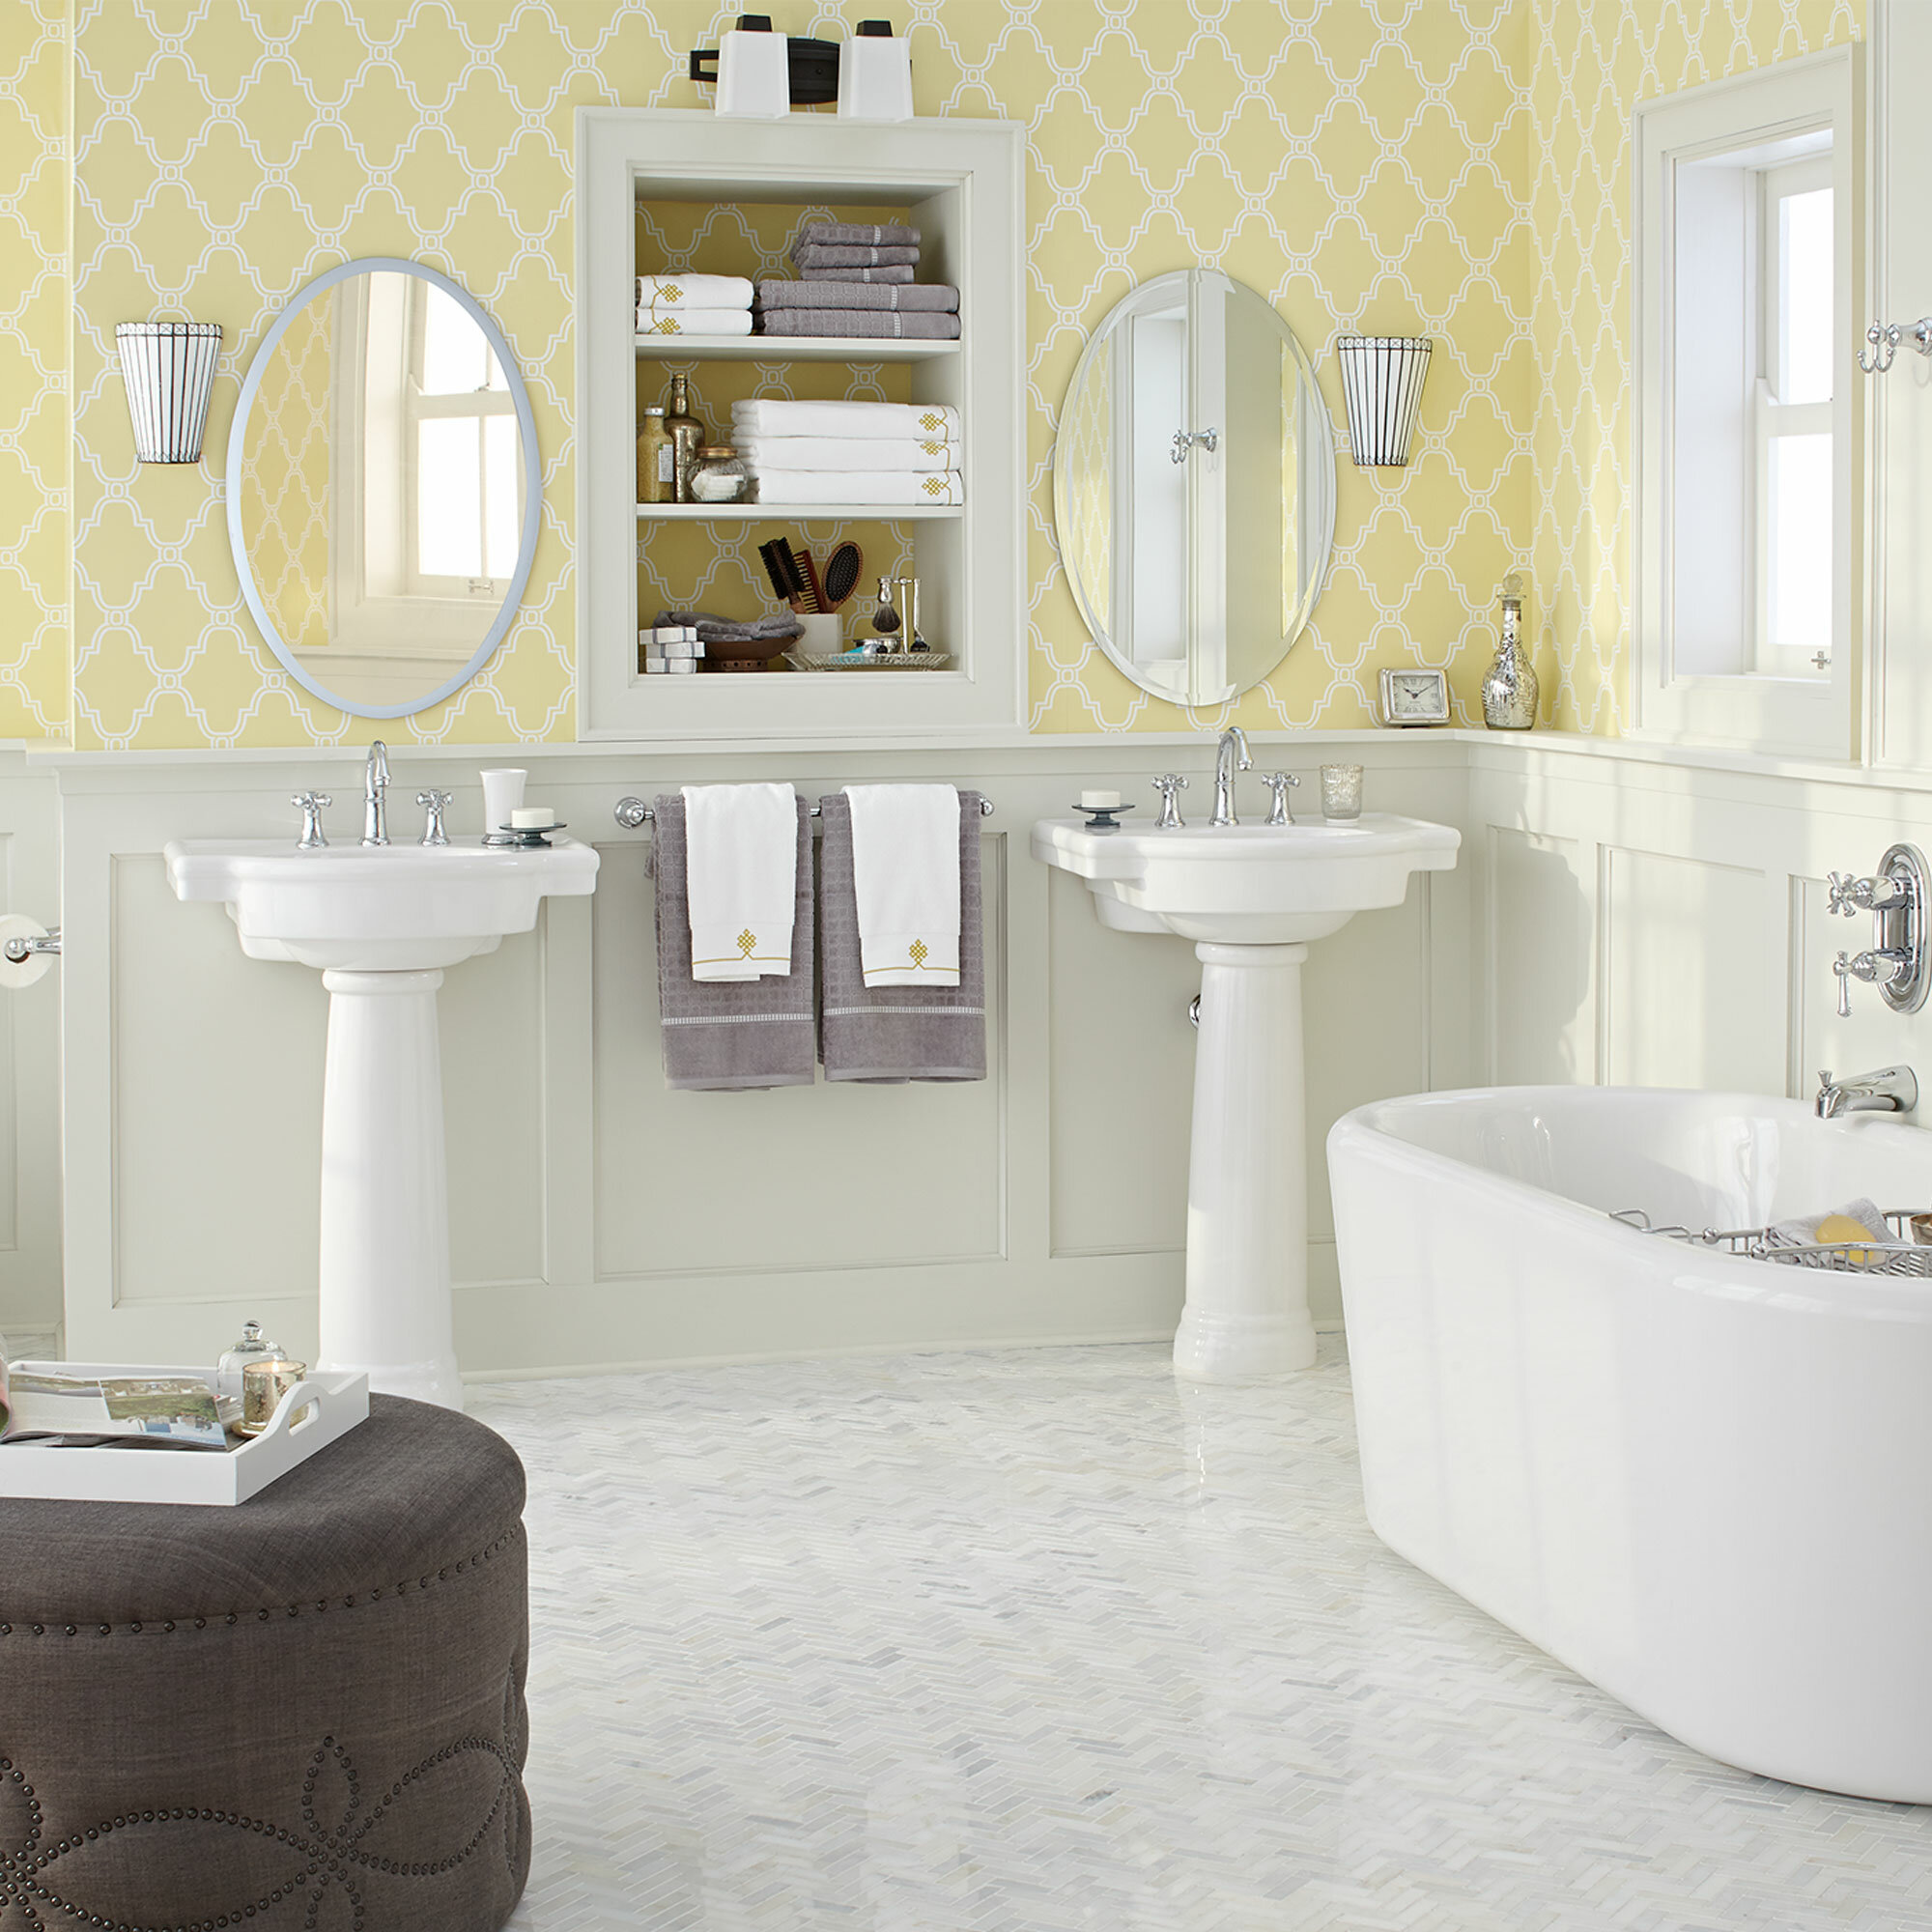 Get Inspired with These Bathroom Wallpaper Ideas (With Photos